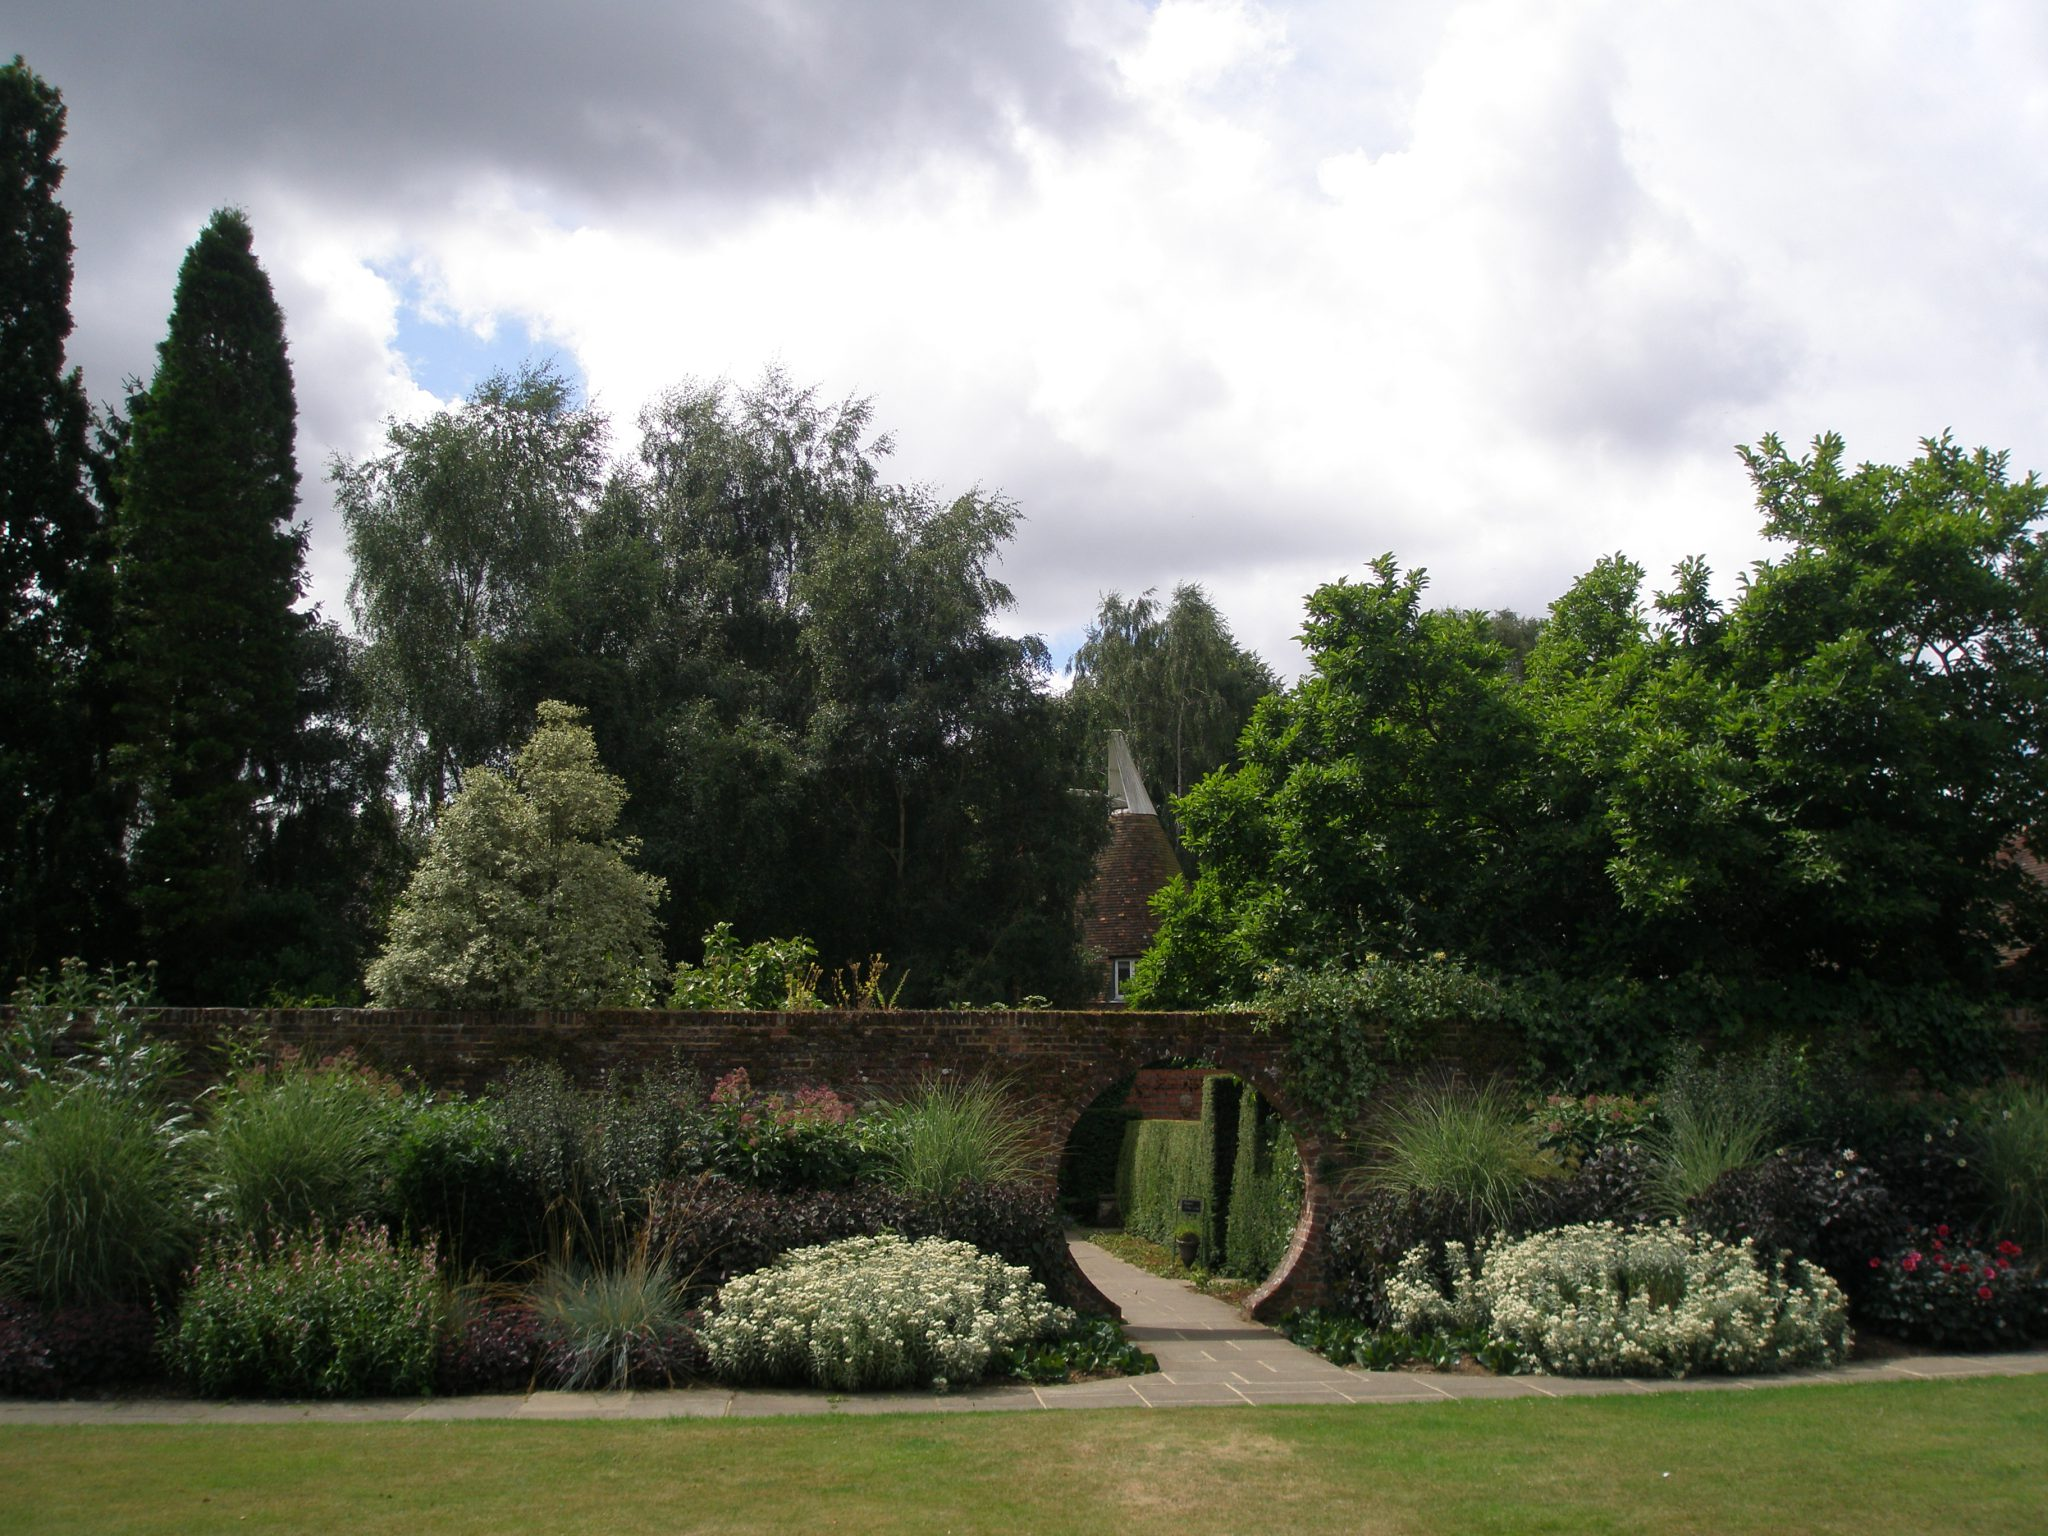 From the center of the Square Walled Garden's Lawn, we look back through the Moon Gate. This Square contains the main herbaceous border, and the annual borders.